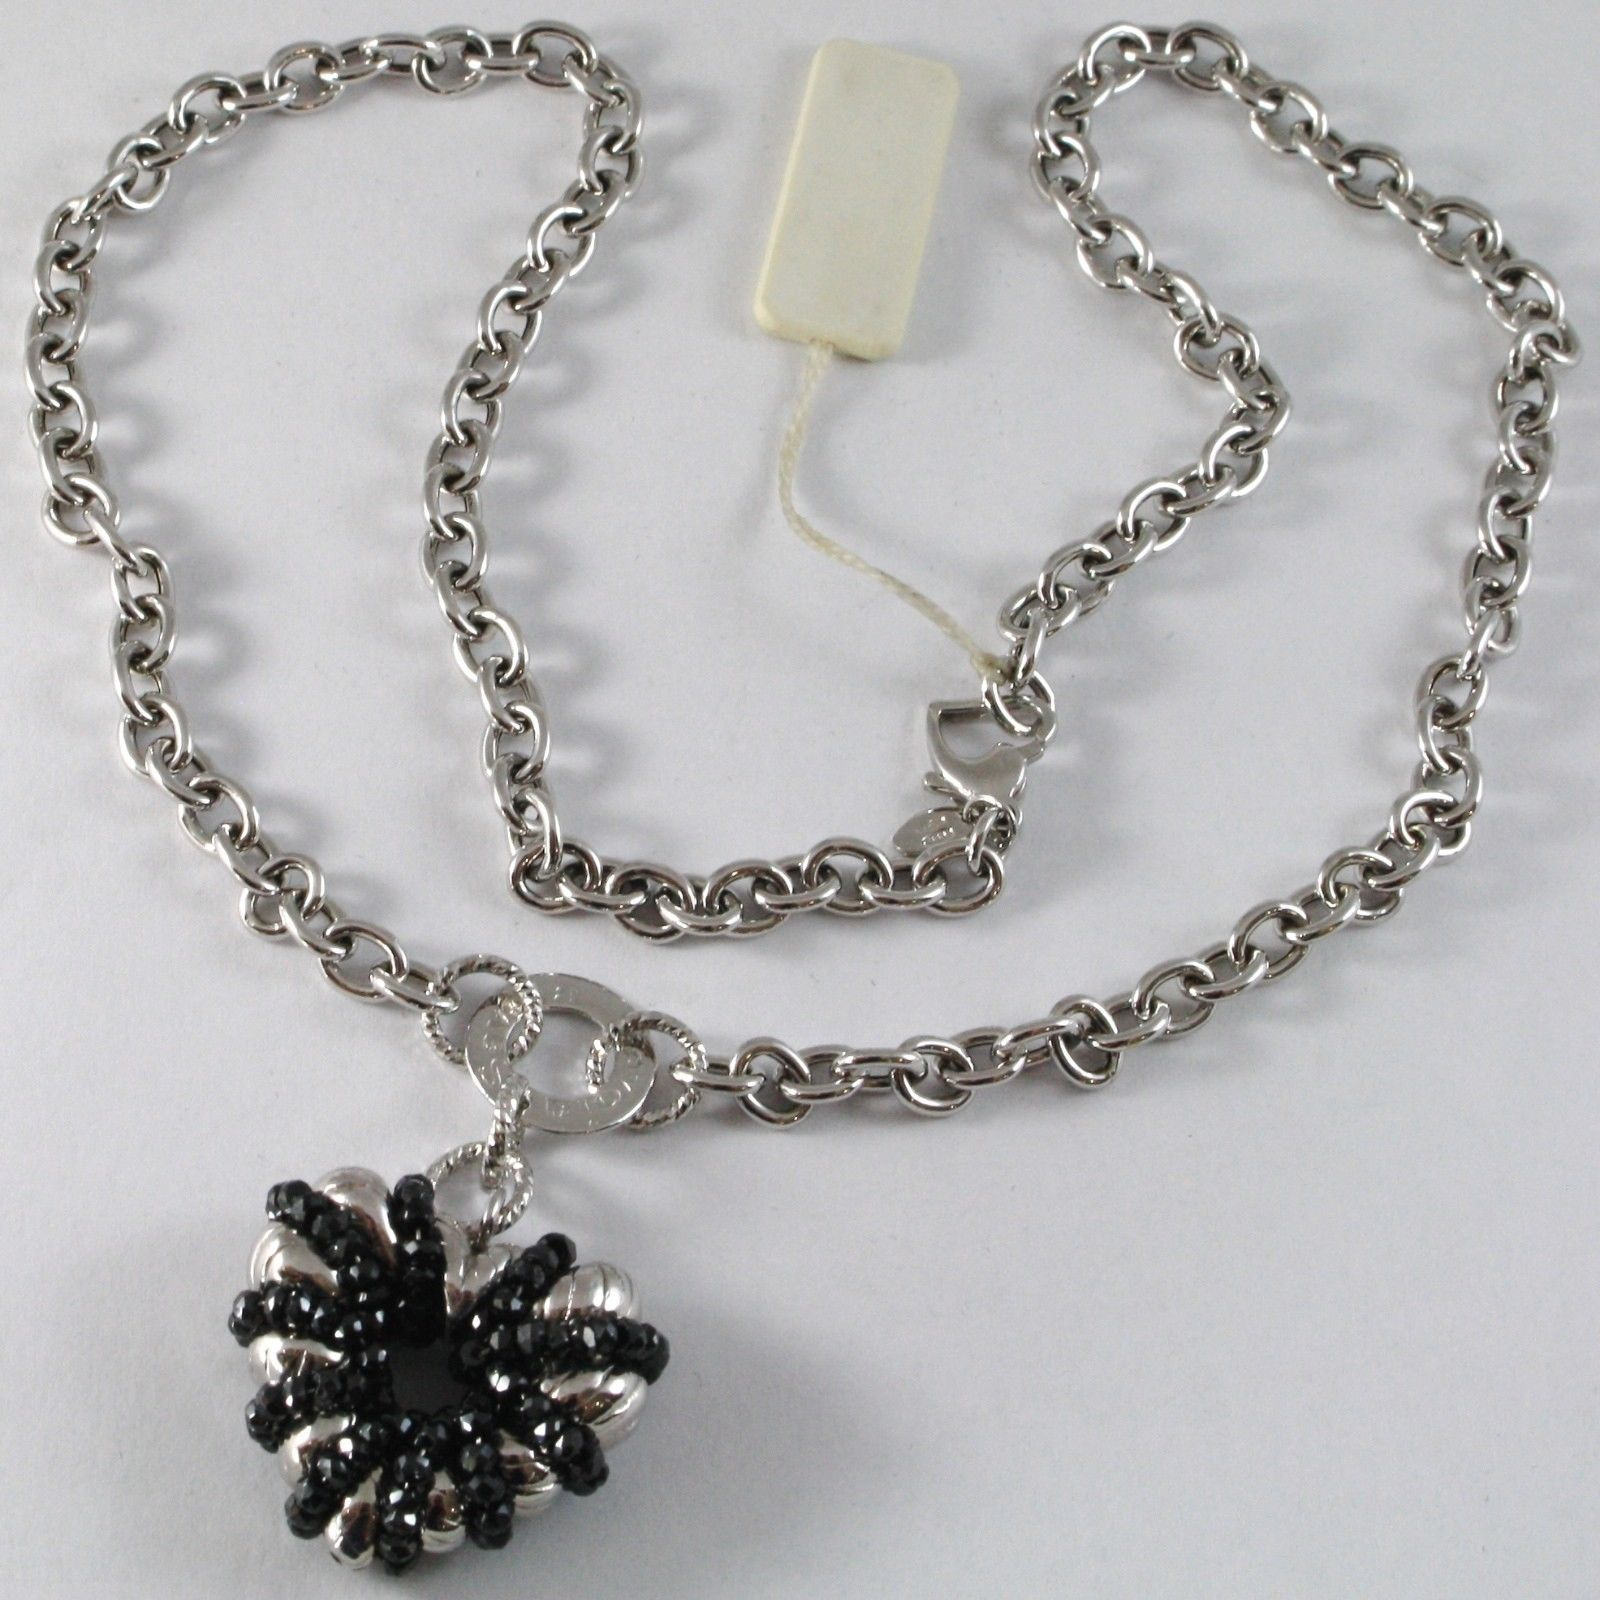 925 STERLING SILVER NECKLACE WITH SPINEL FINELY WORKED BIG HEART PENDANT, ITALY